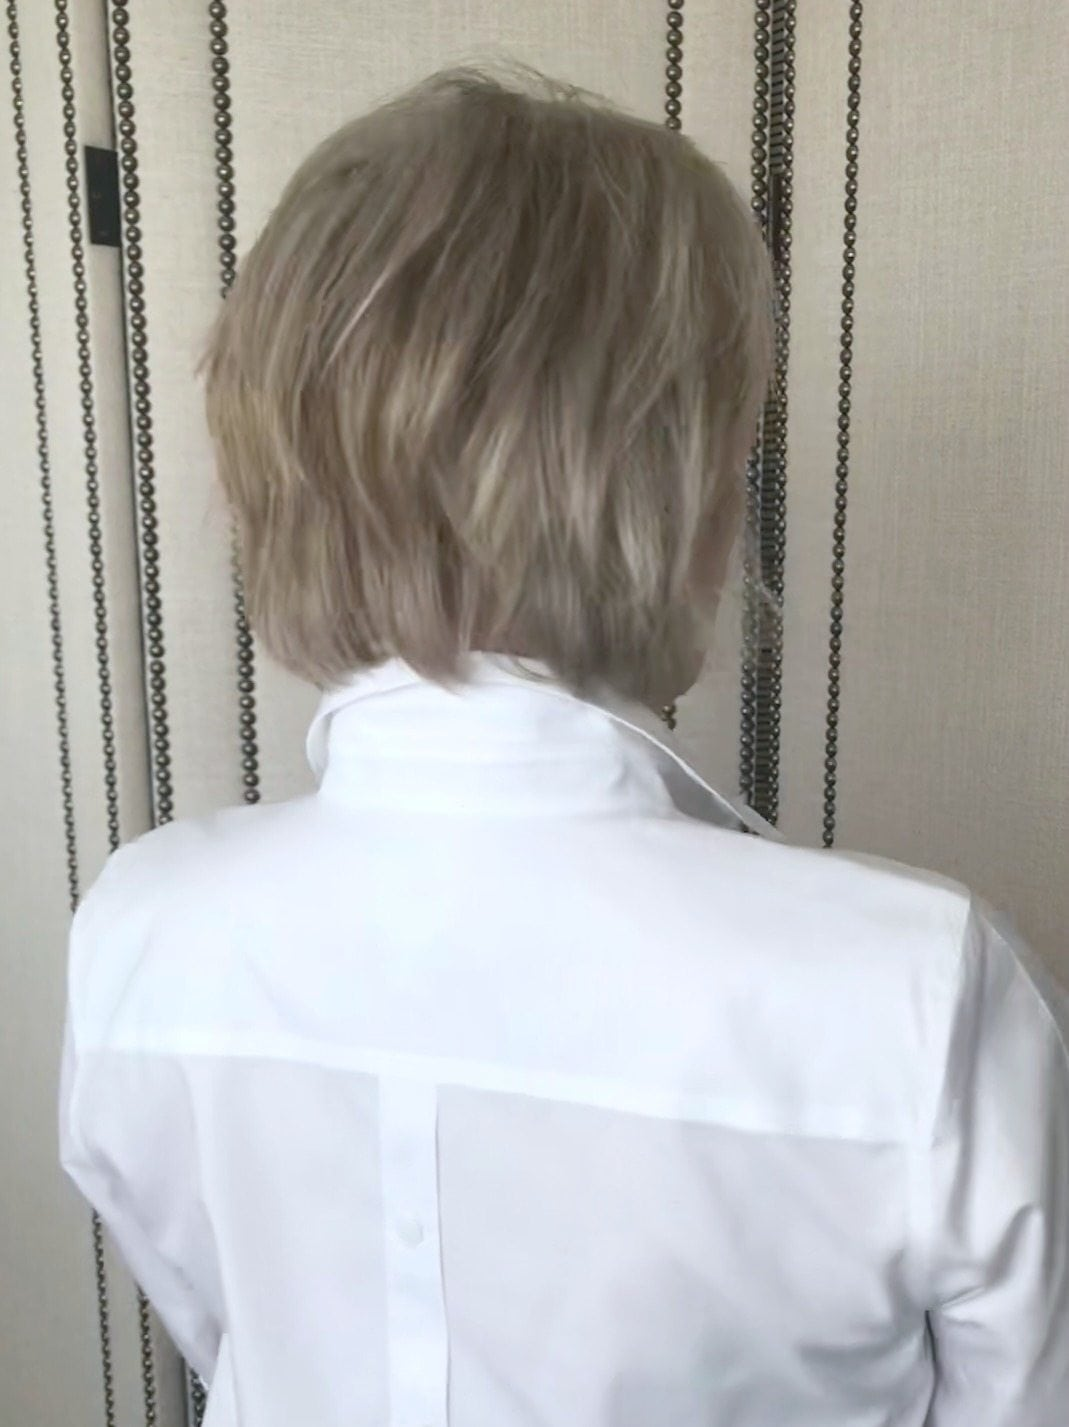 How to Pop a Collar and Keep it Up